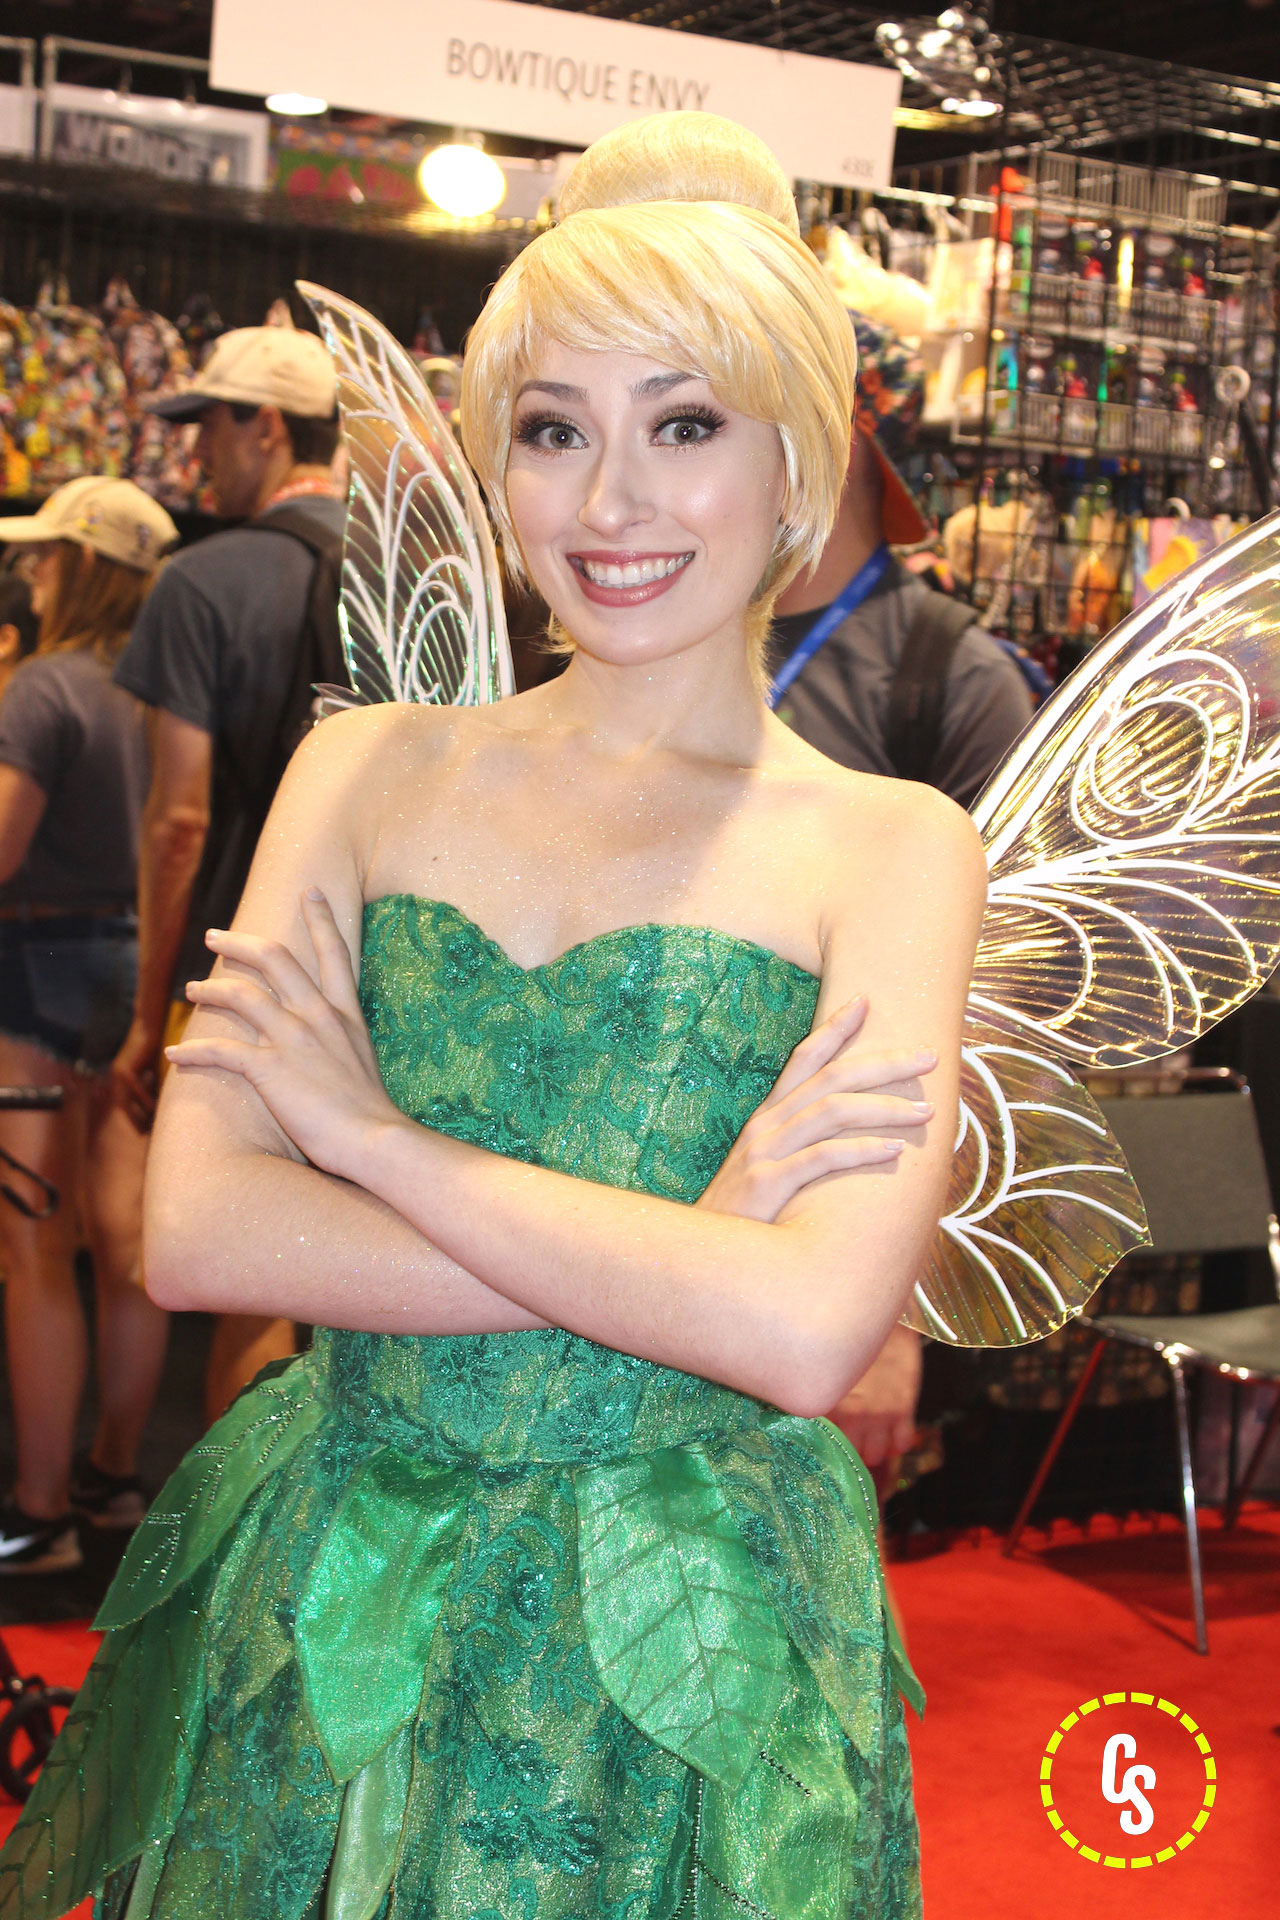 D23 Expo 2017 Cosplay